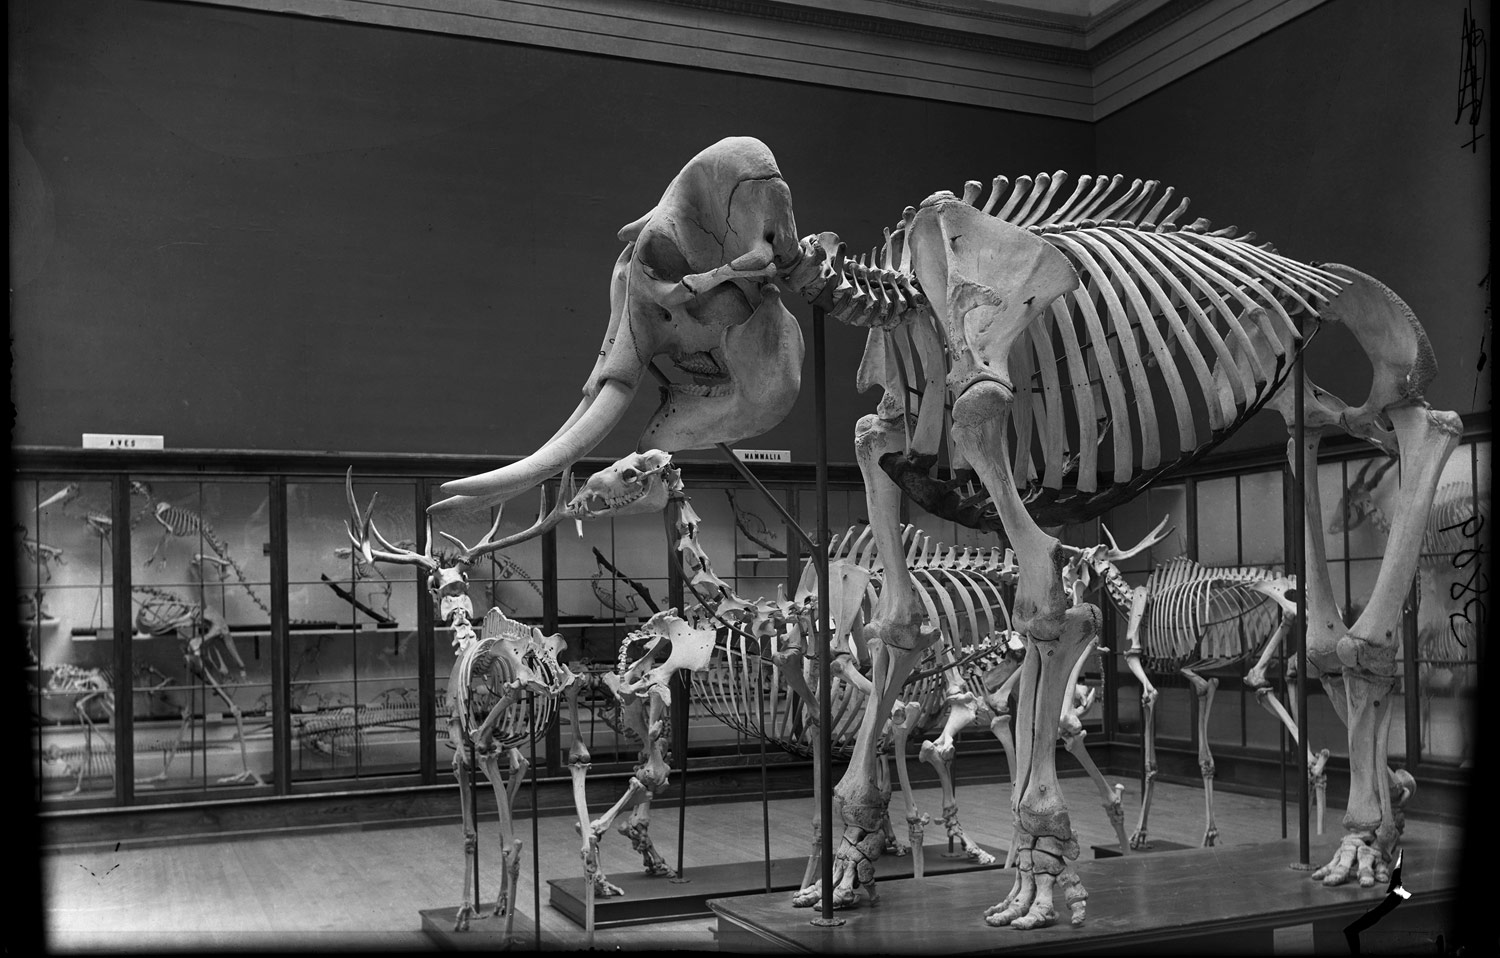 Paleo skeletons, mastodon or elephant skeleton, Irish Elk. The Field Columbian Museum, 1898